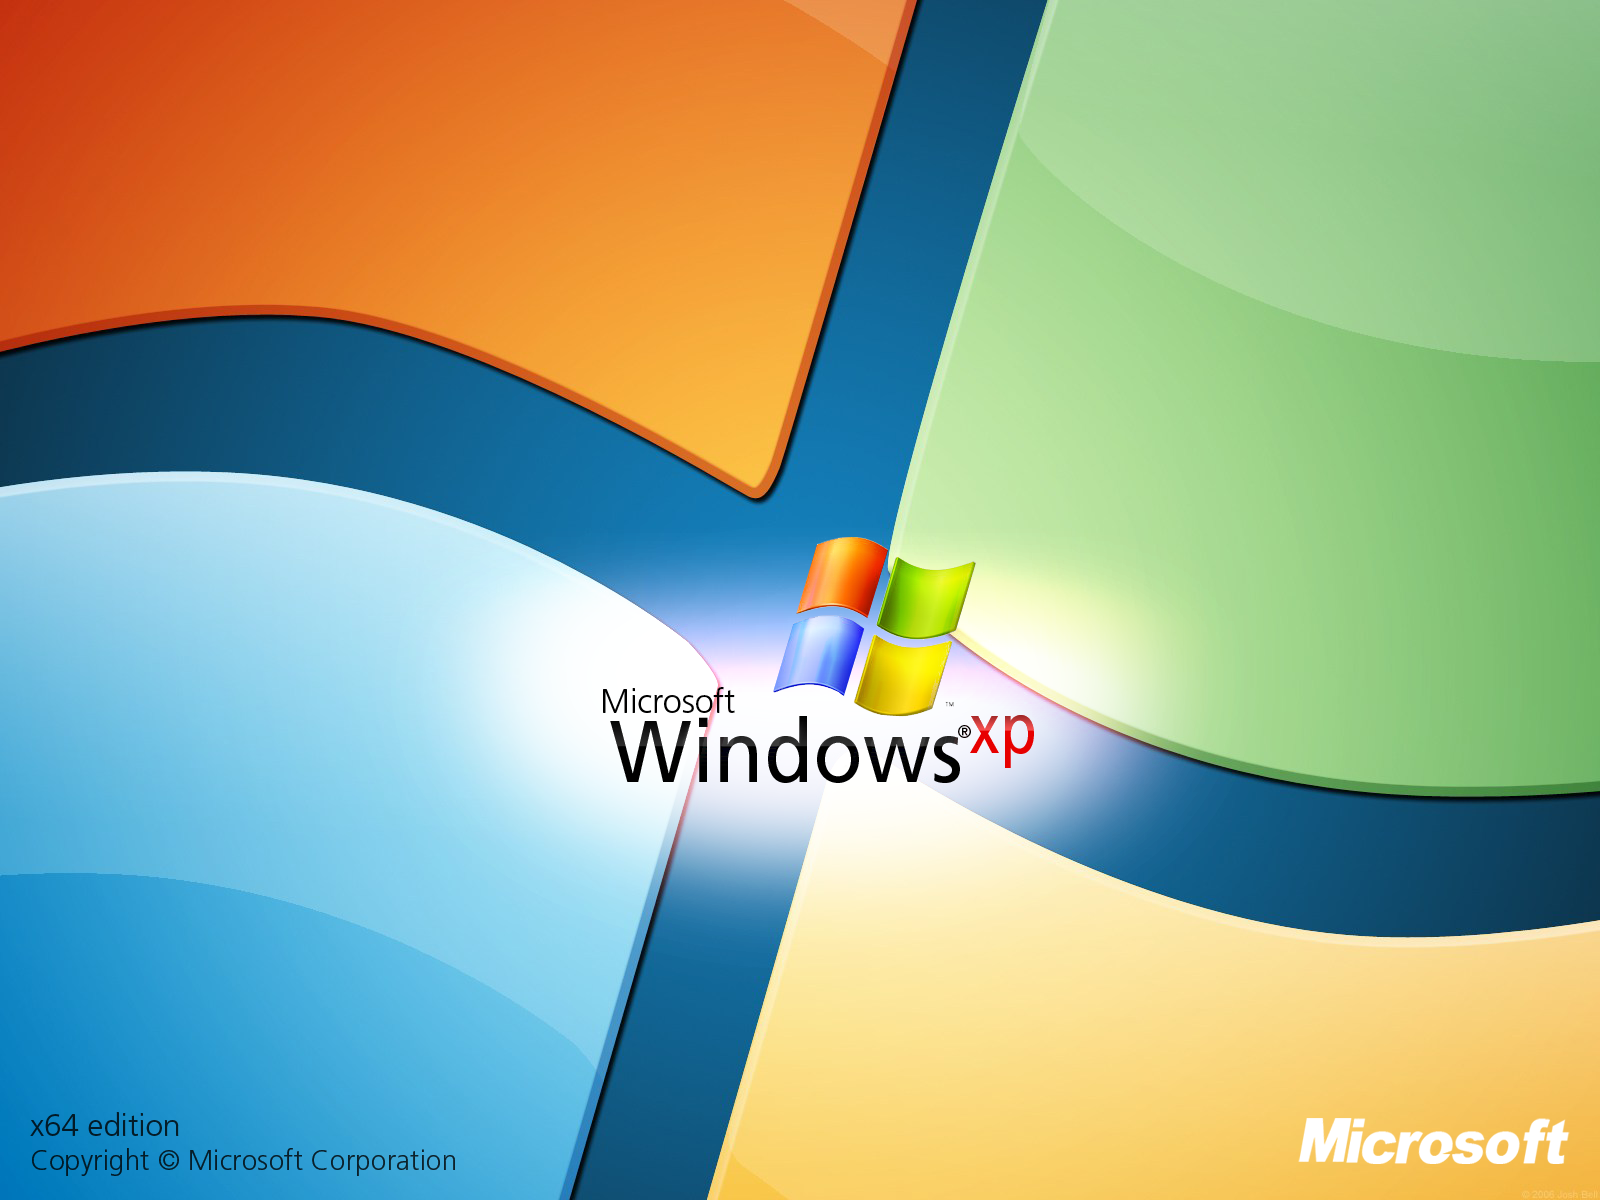 http://3.bp.blogspot.com/_9xO6pgjUWn4/TR2LL8vxQ1I/AAAAAAAAARE/F4o9wSsqtQc/s1600/big-windows-logo-wallpaper.png